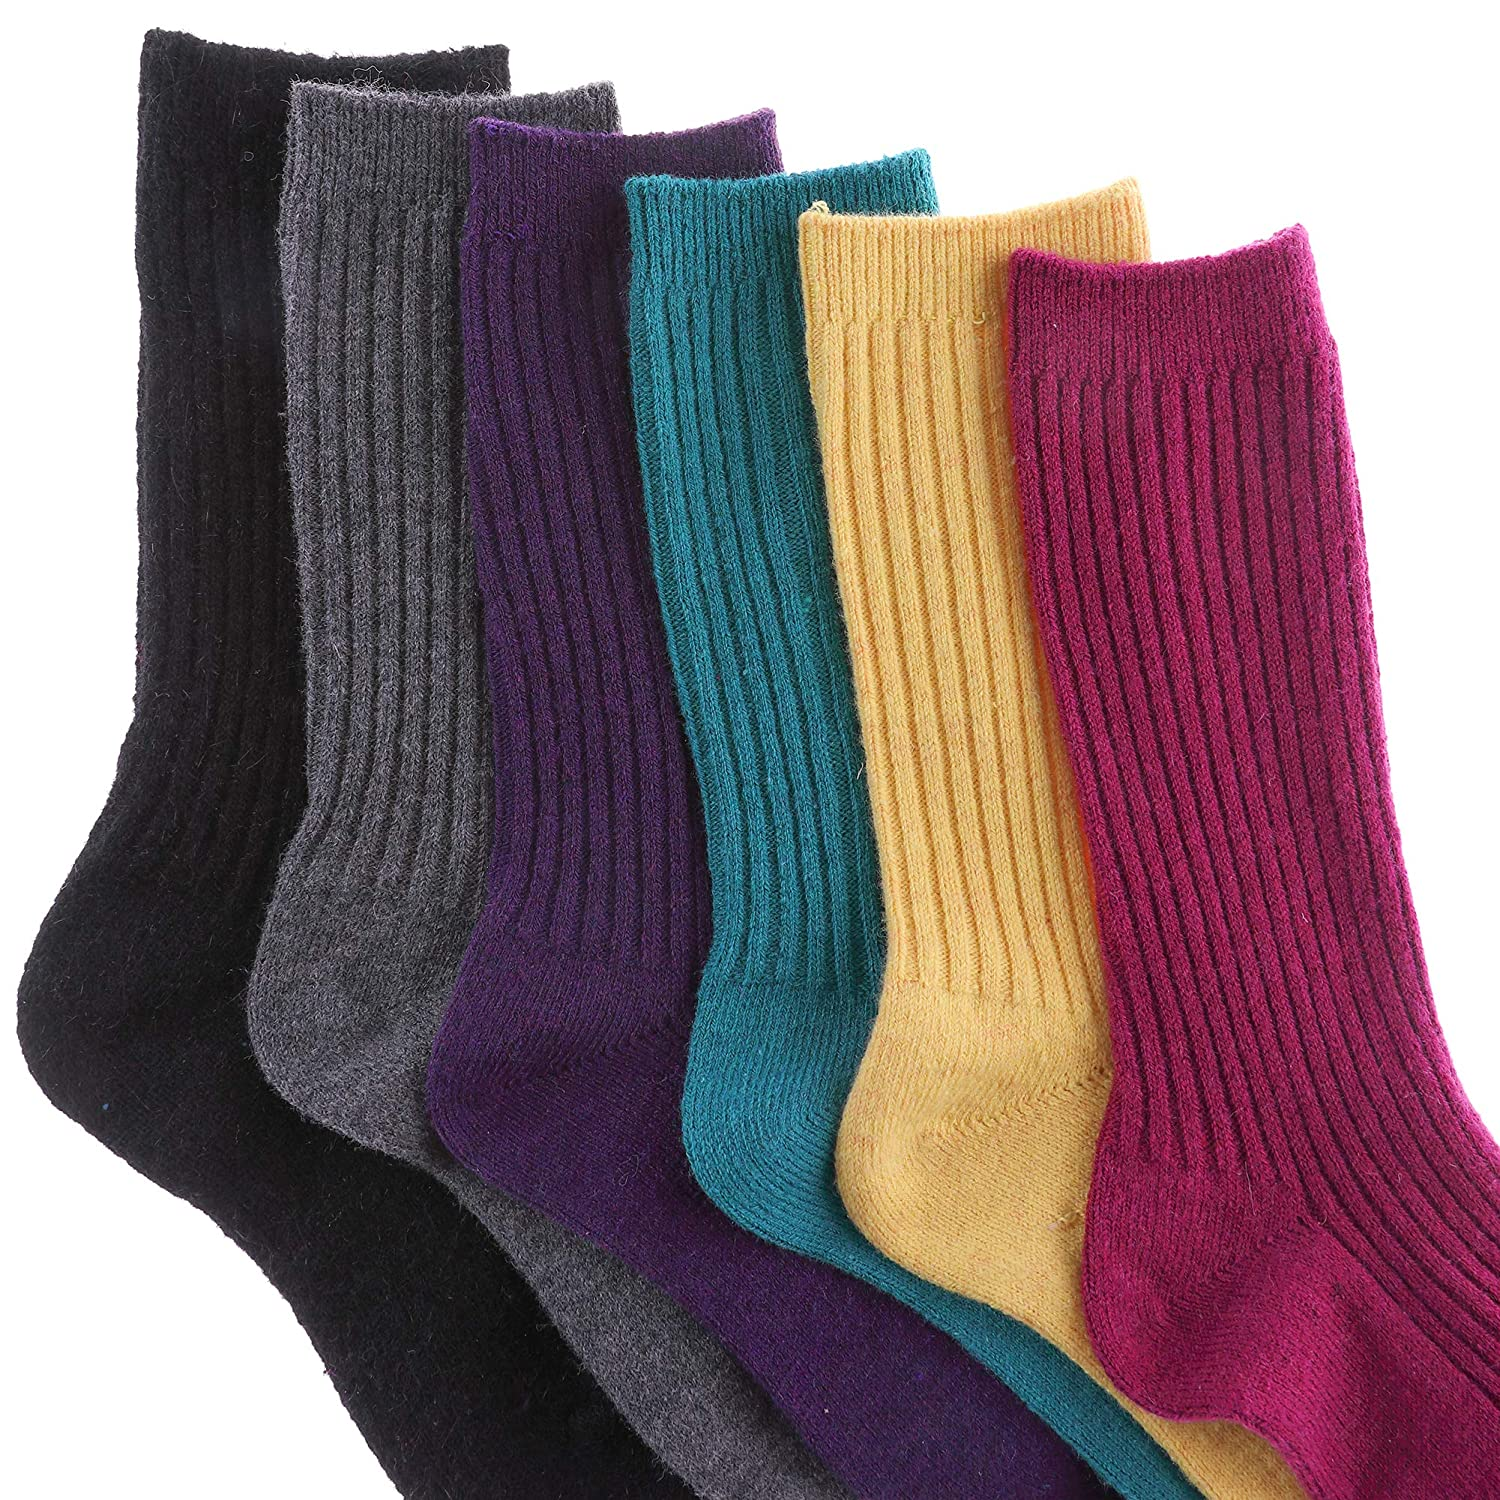 MIUBEAR Newborn Baby Girl Boy Toddler Cable Knit Knee High Wool Socks 6 Pack 0-9 Year Old